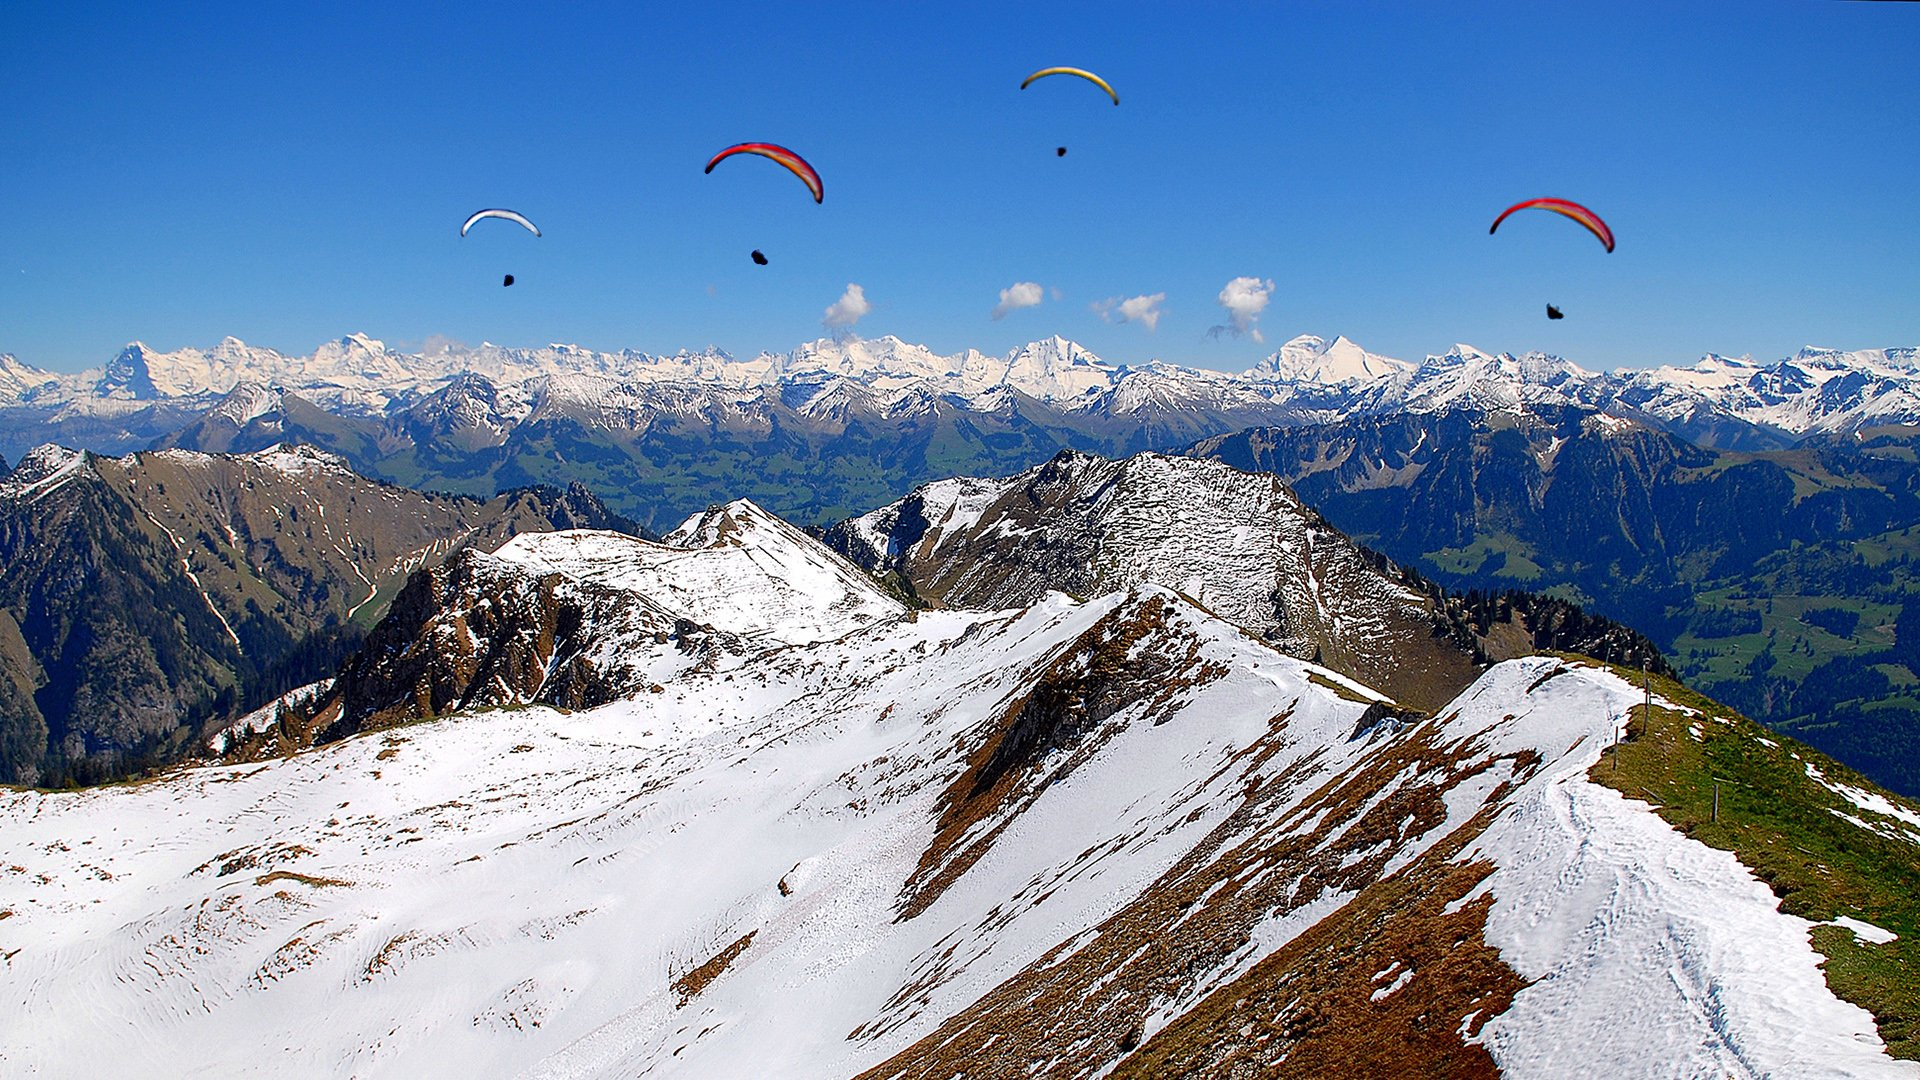 paragliding hd wallpaper | background image | 1920x1080 | id:554512